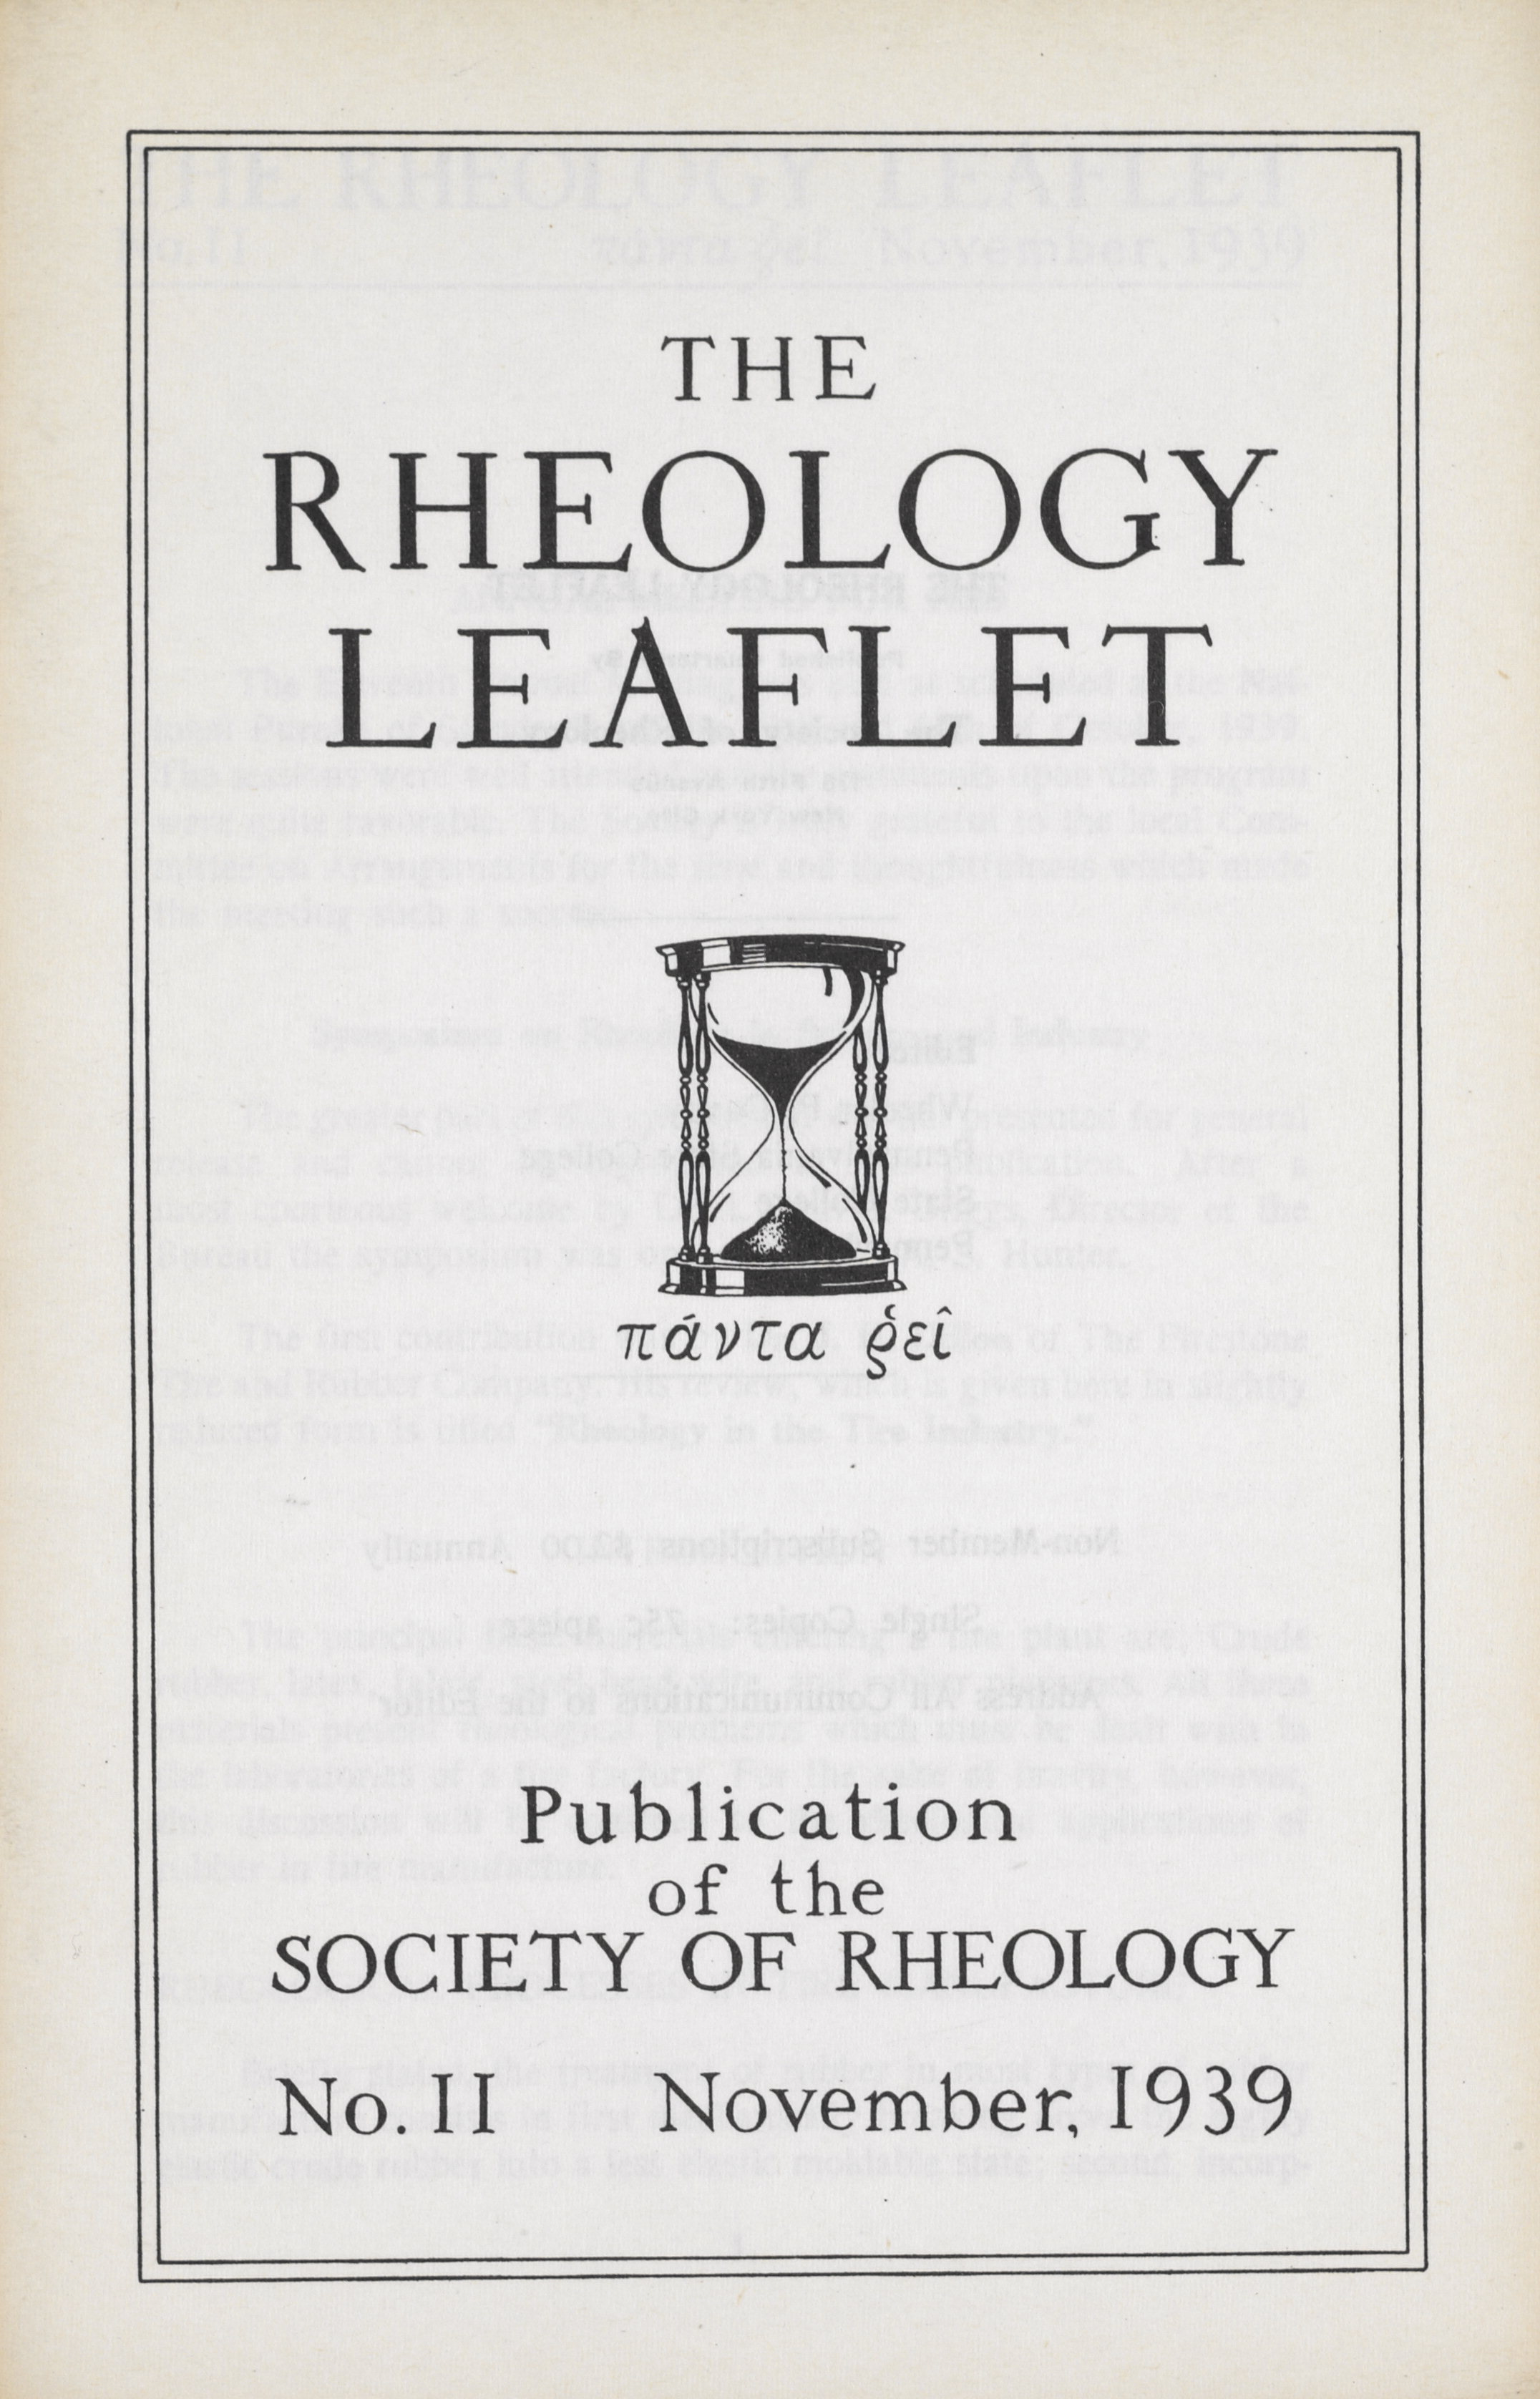 Box 4, Folder 11, Rheology Leaflet, No. 11, November 1939